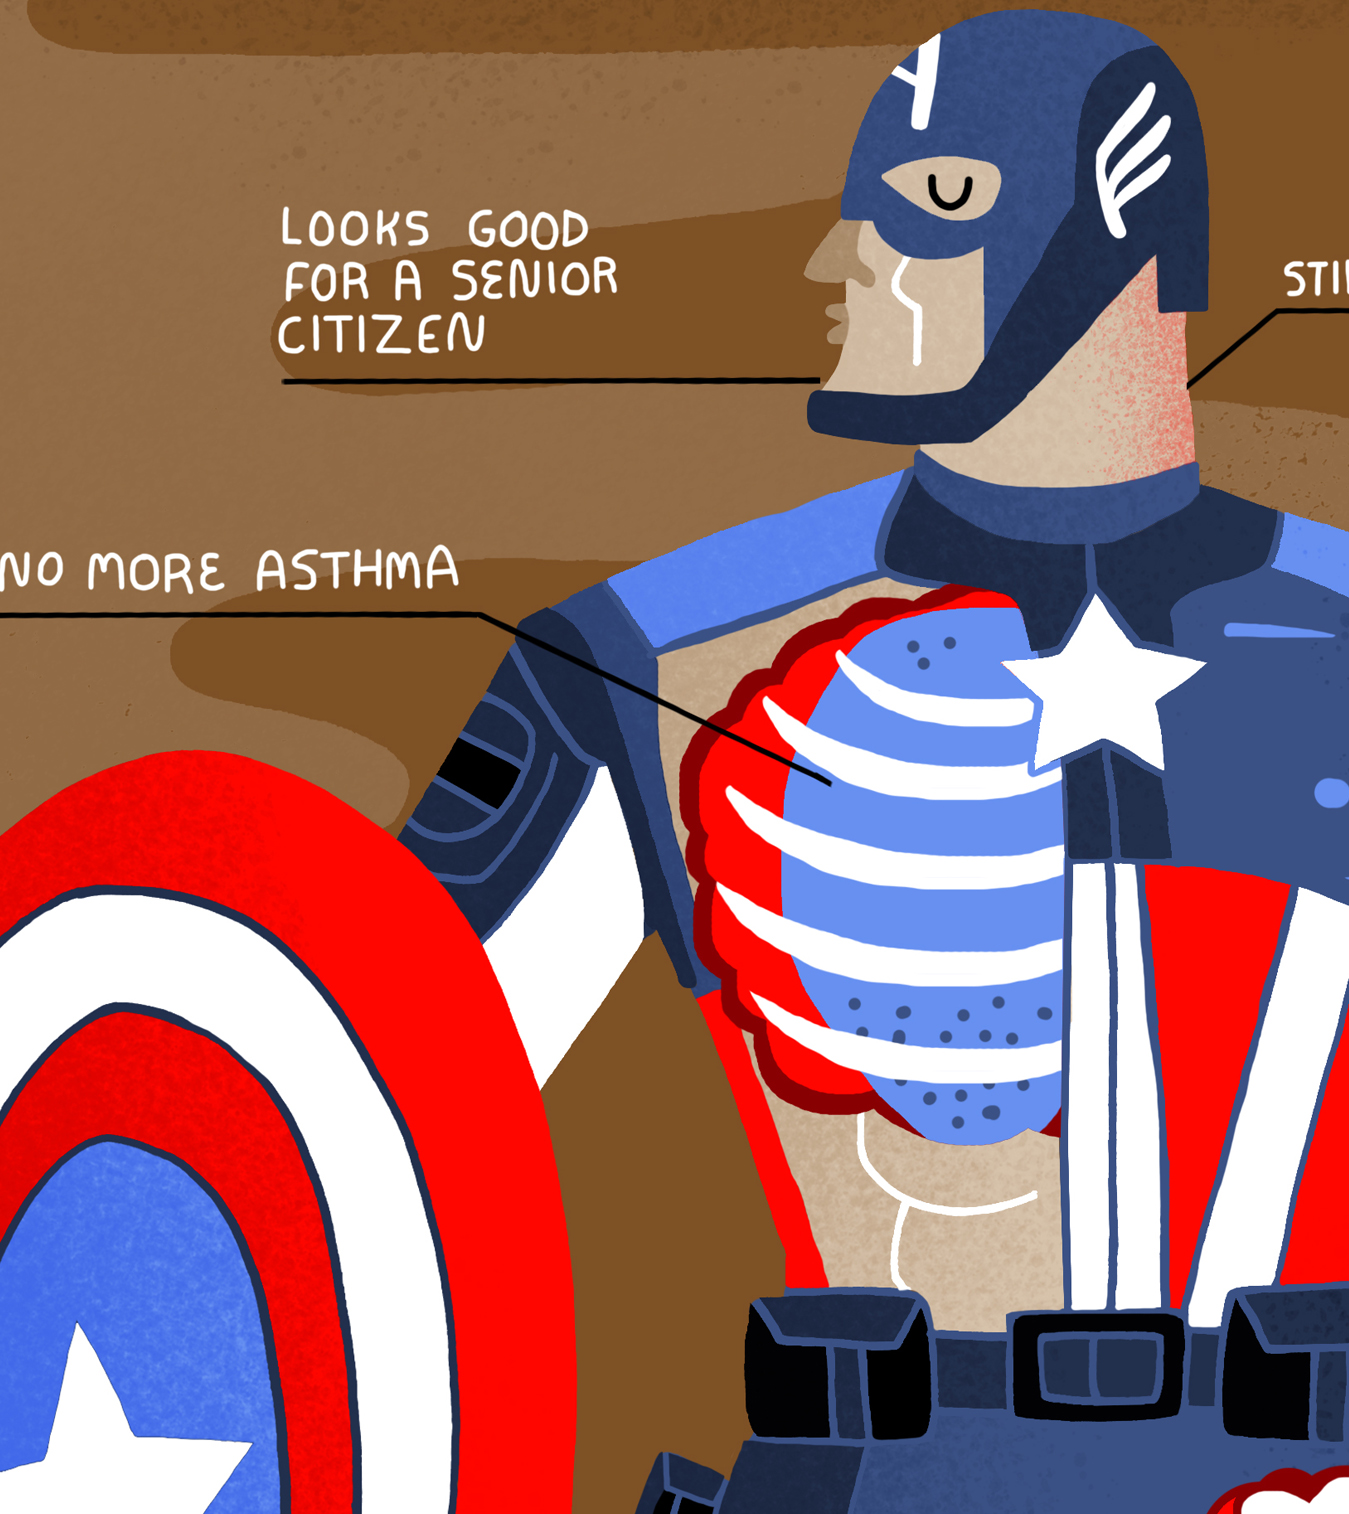 ANATOMY OF THE AVENGERS